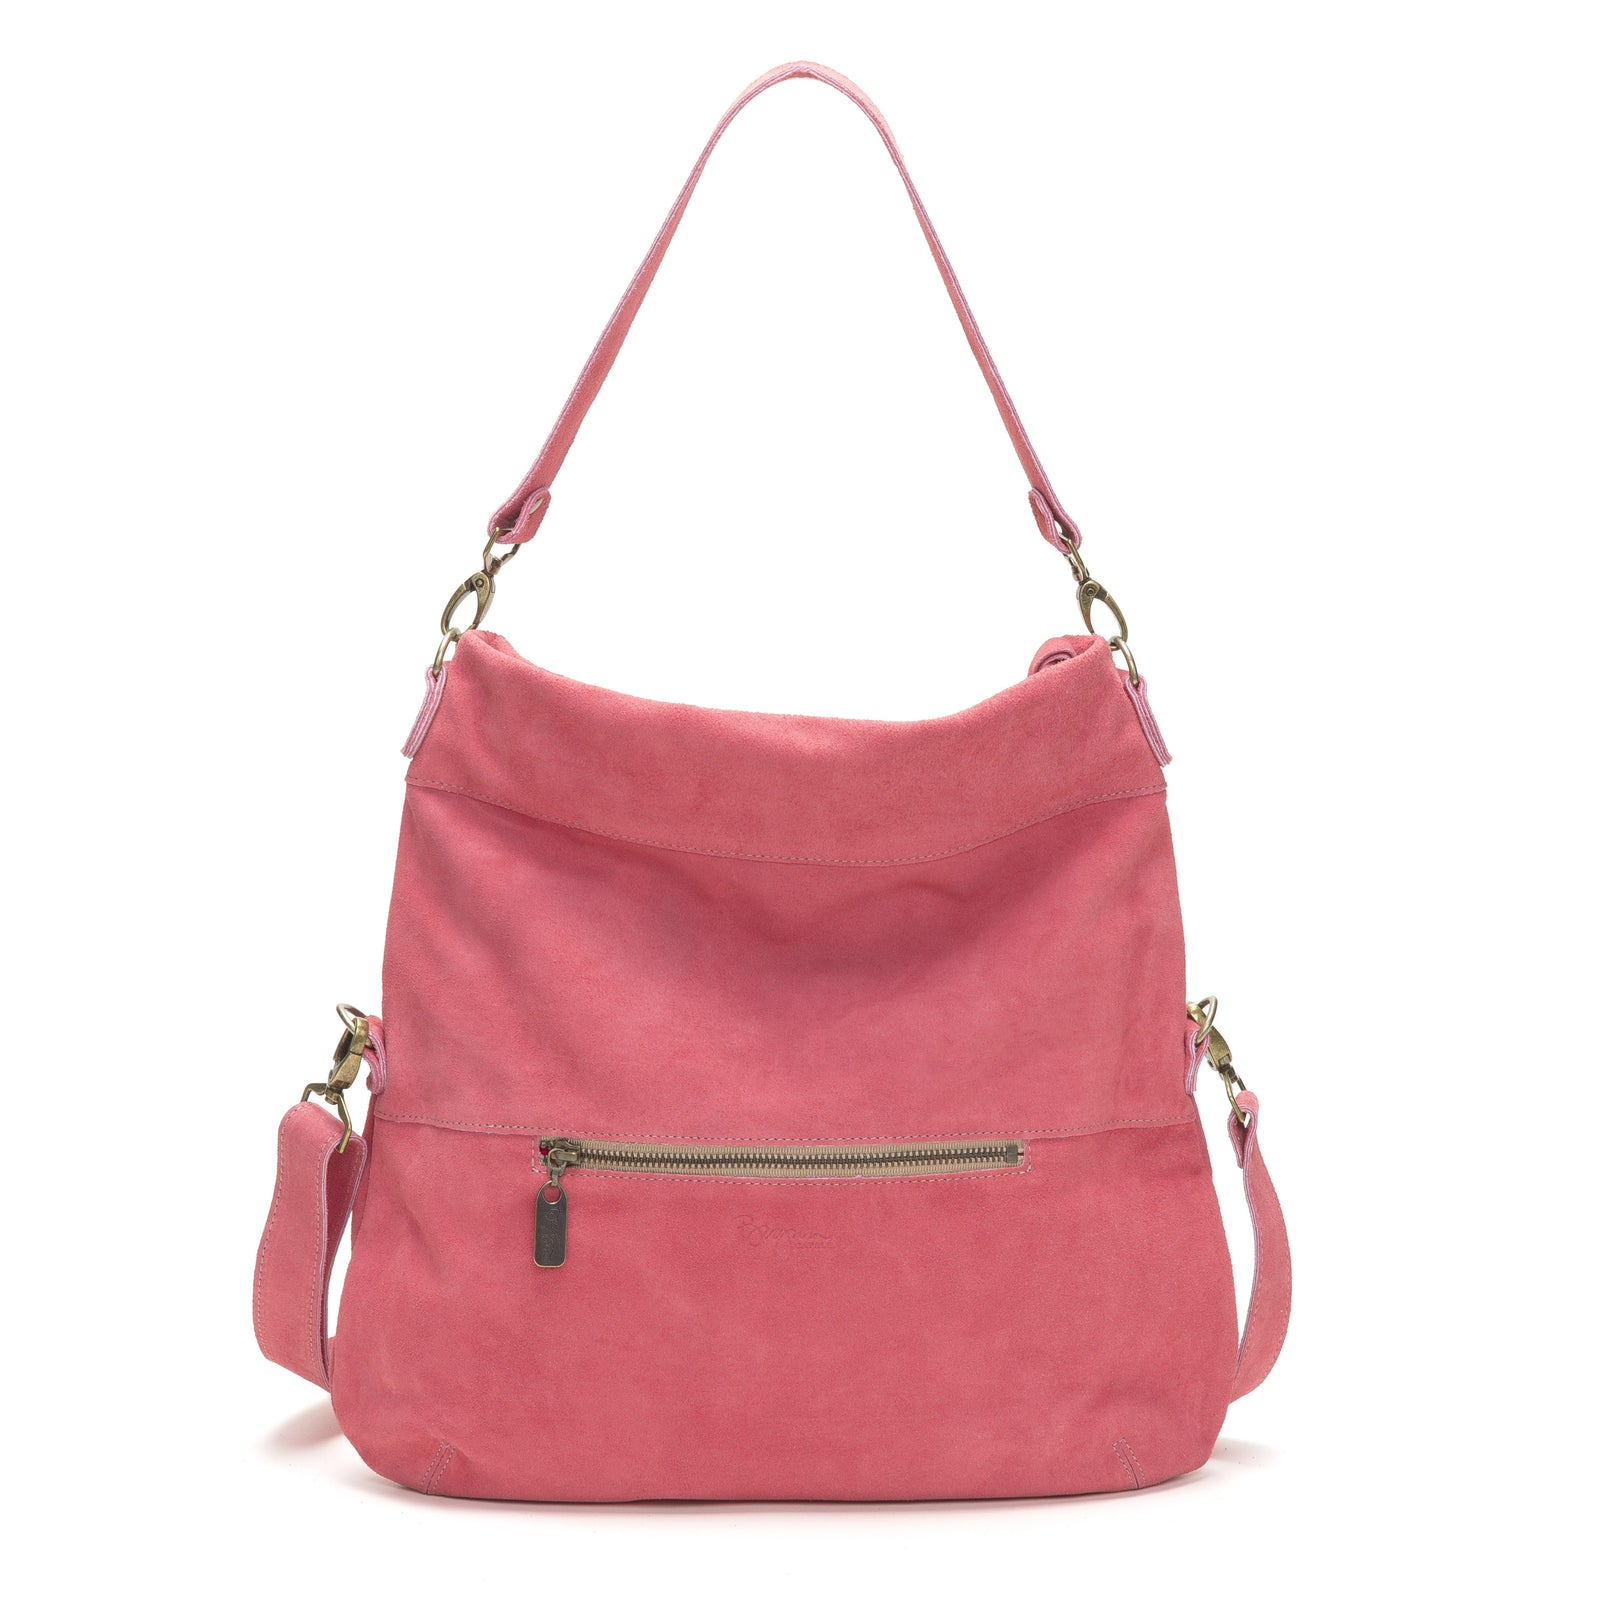 Lauren Crossbody - Watermelon - Brynn Capella, Large Crossbody